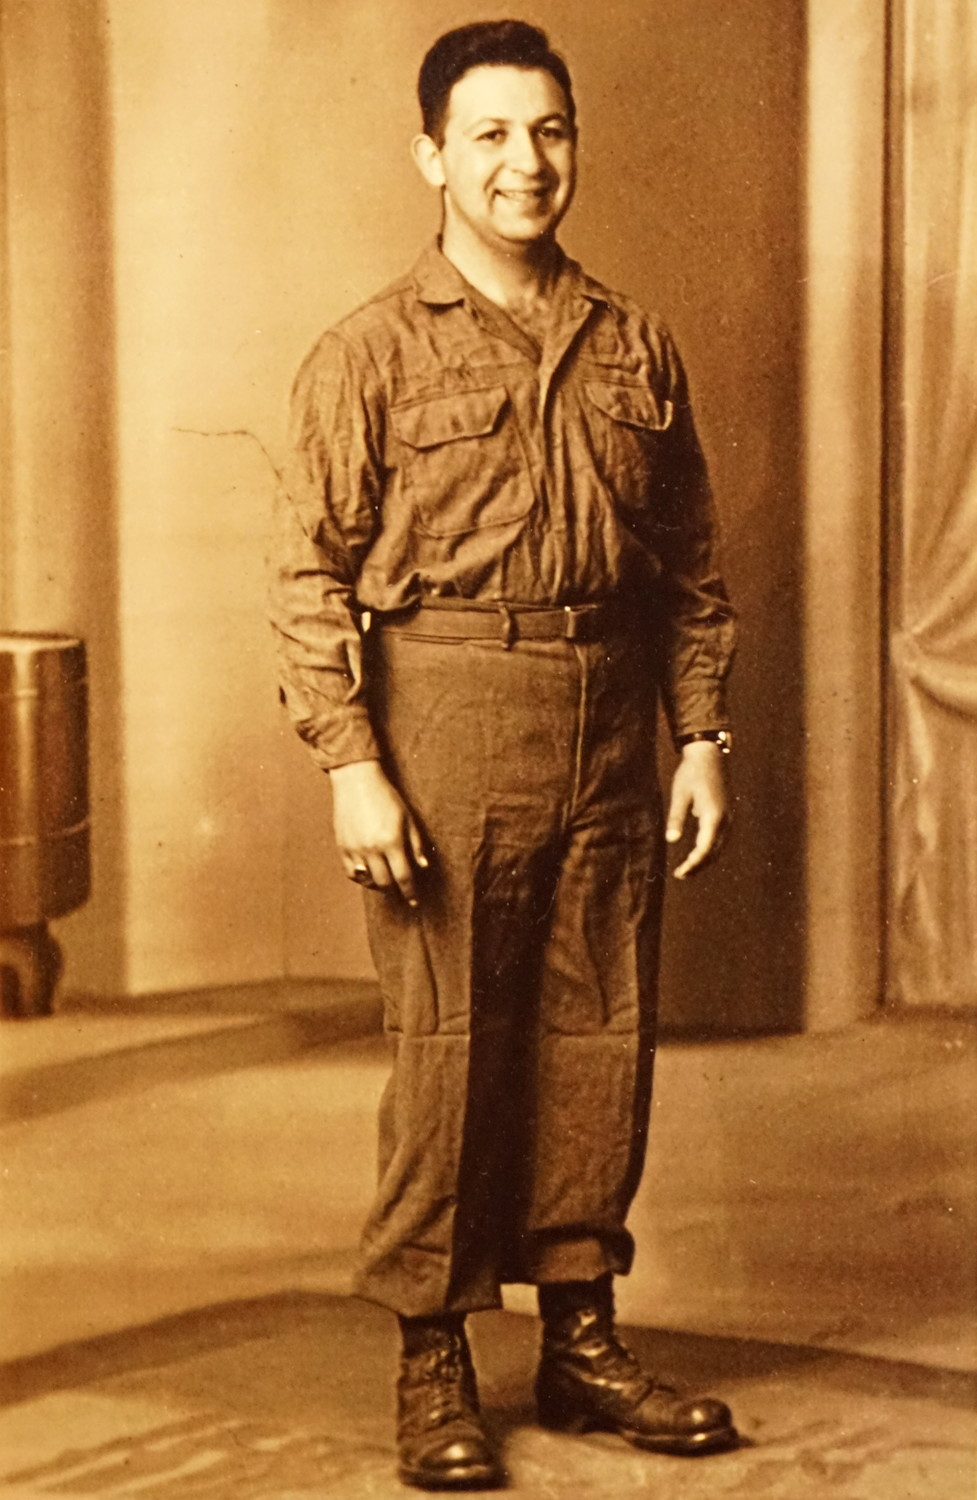 Seitman enlisted in 1942 and joined the Army Signal Corps.